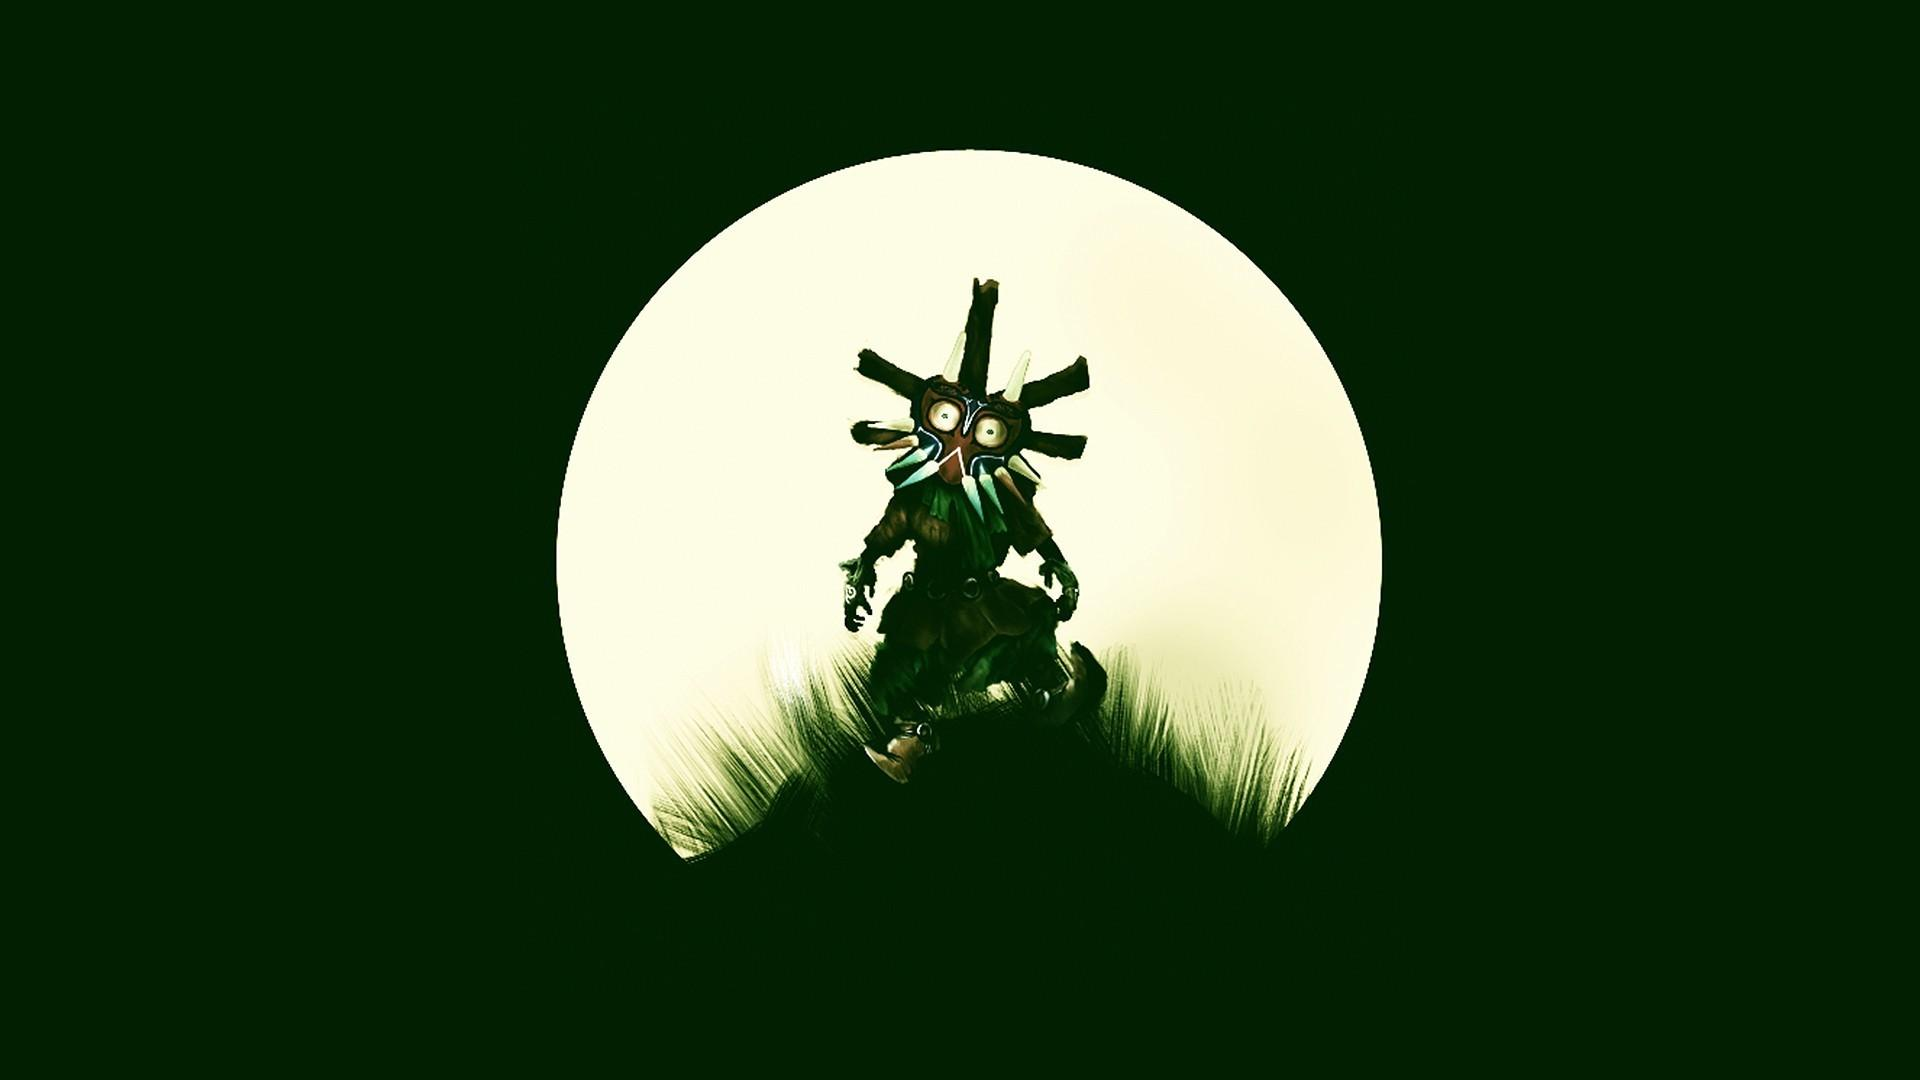 The Legend Of Zelda: Majora's Mask Full HD Wallpapers And